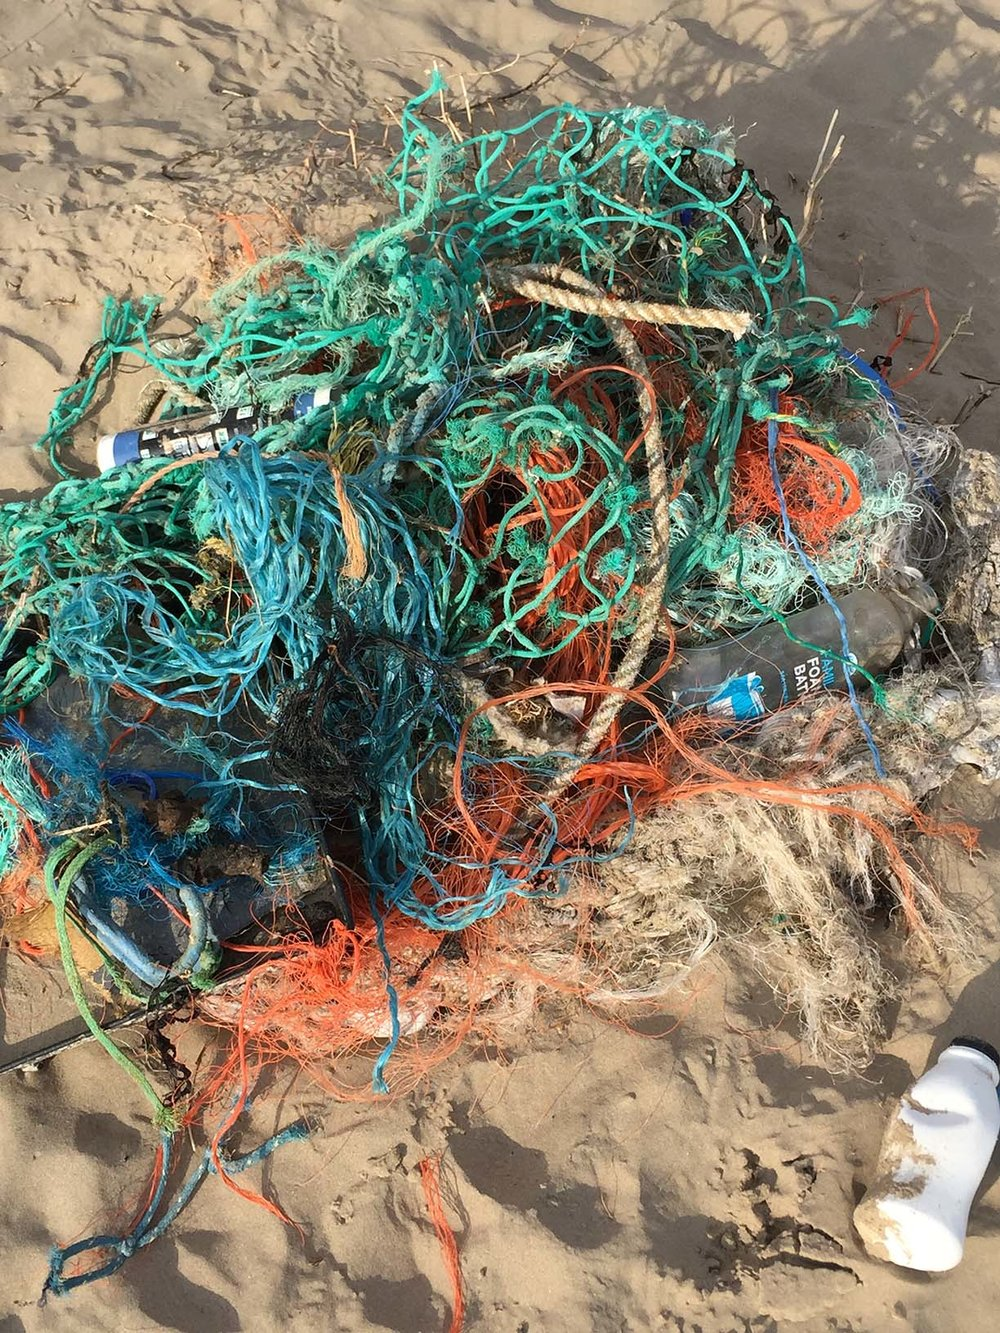 Discarded fishing lines and netting collected by Carmen at a beach.